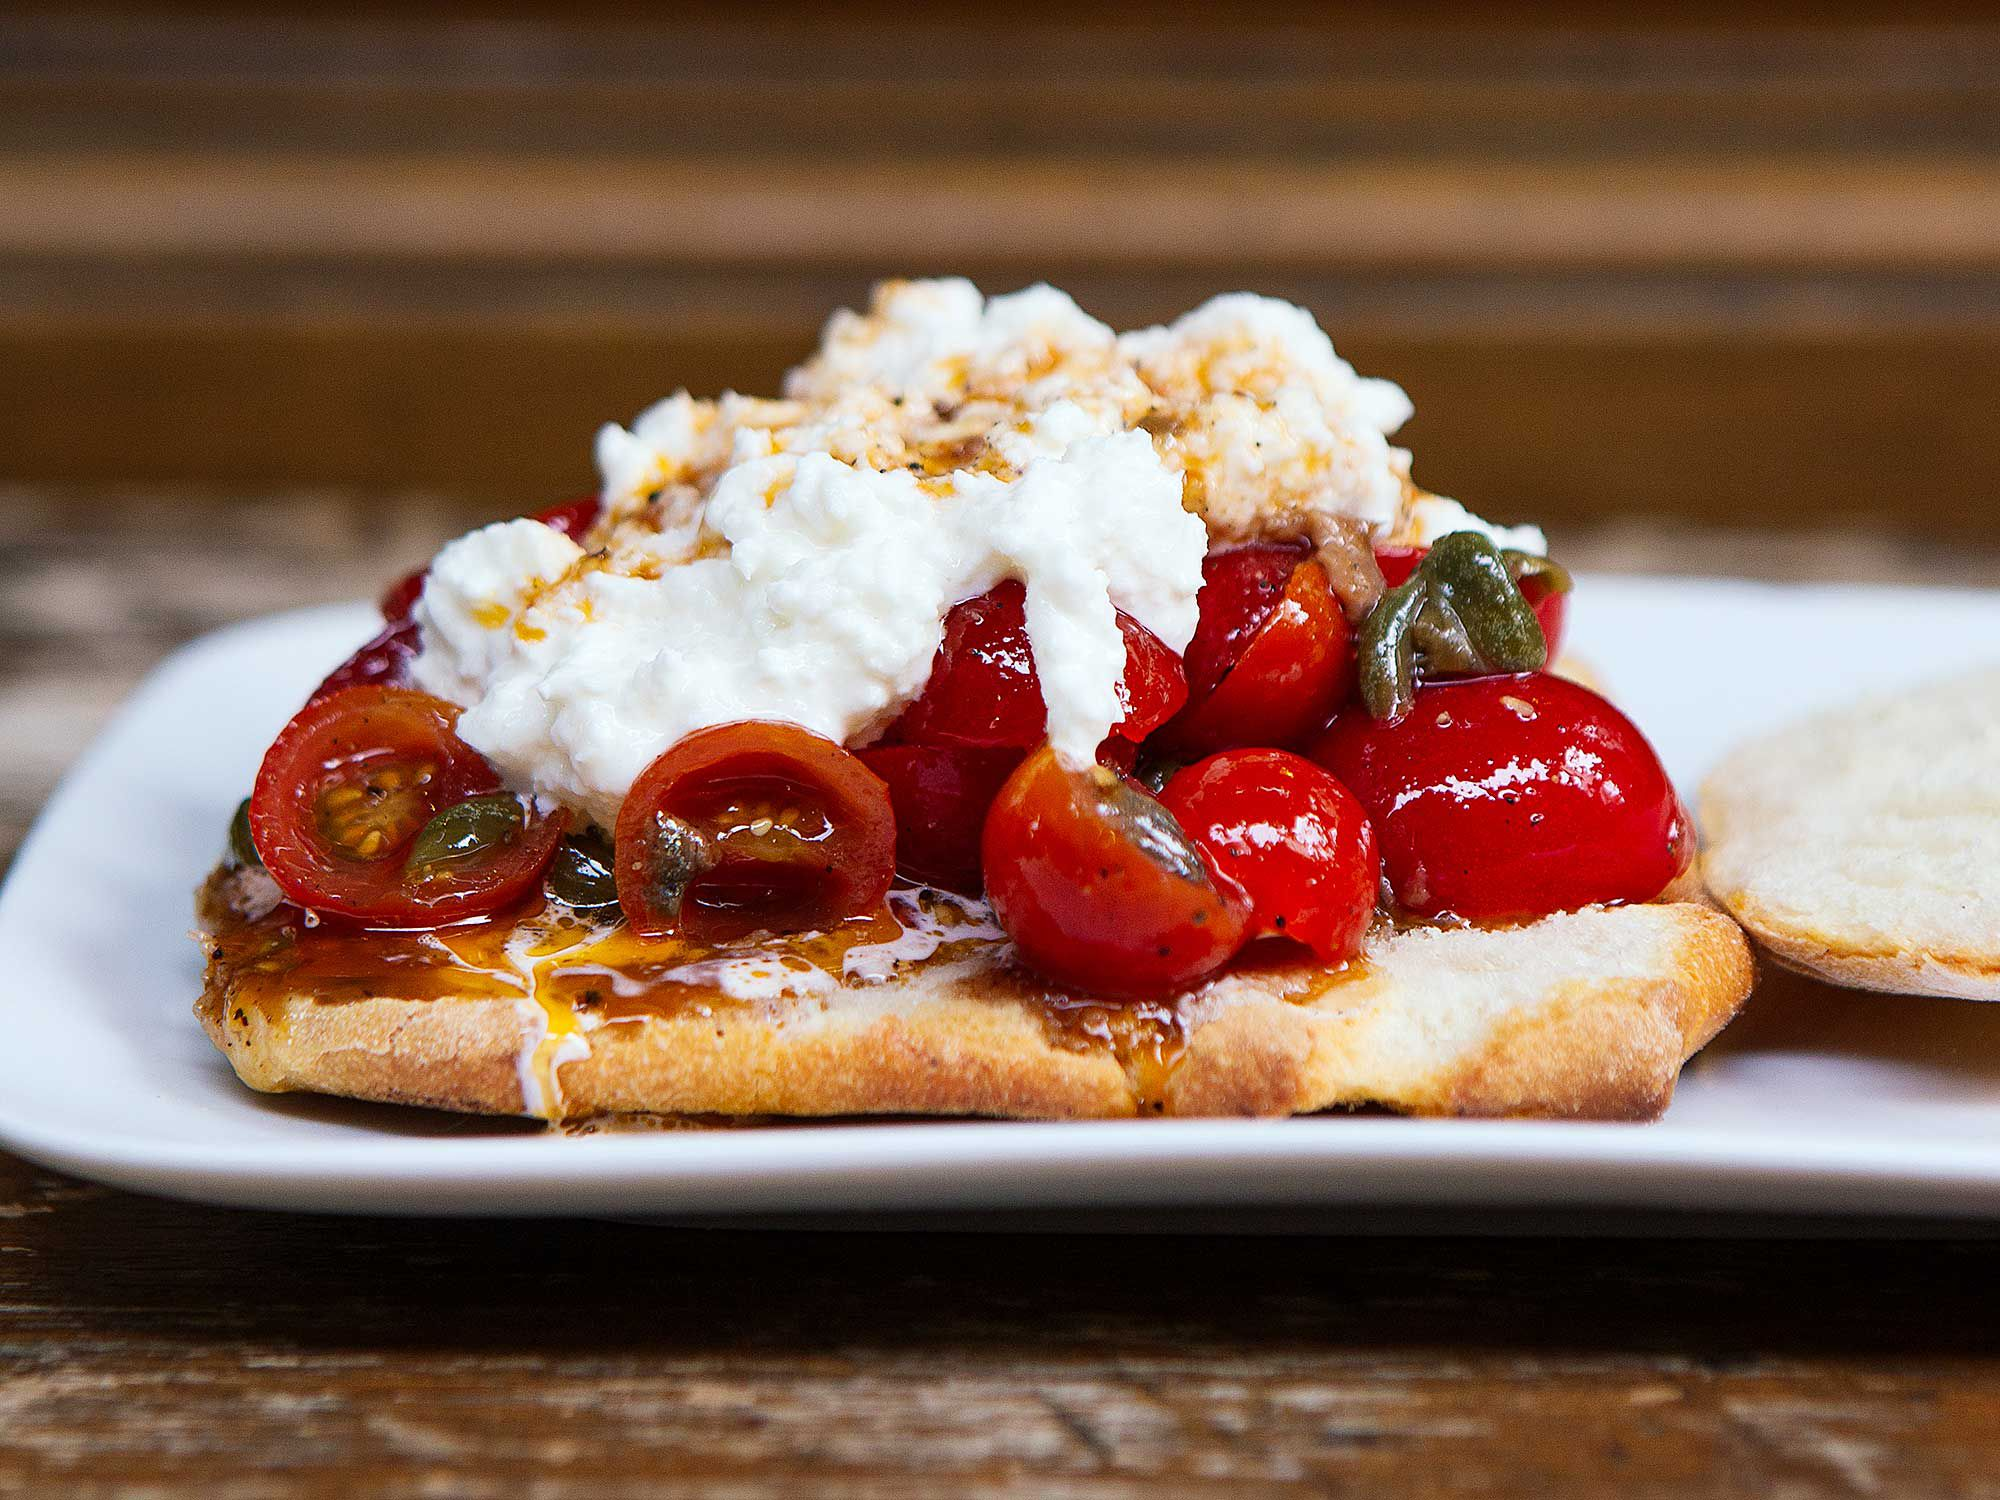 "Crusty bread sops up creamy burrata and juicy marinated tomatoes in this pleasantly messy sandwich. Get the recipe for <a href=""http://www.saveur.com/burrata-tomato-sandwich-italian-recipe"">Burrata and Marinated Cherry Tomato Sandwiches</a>"